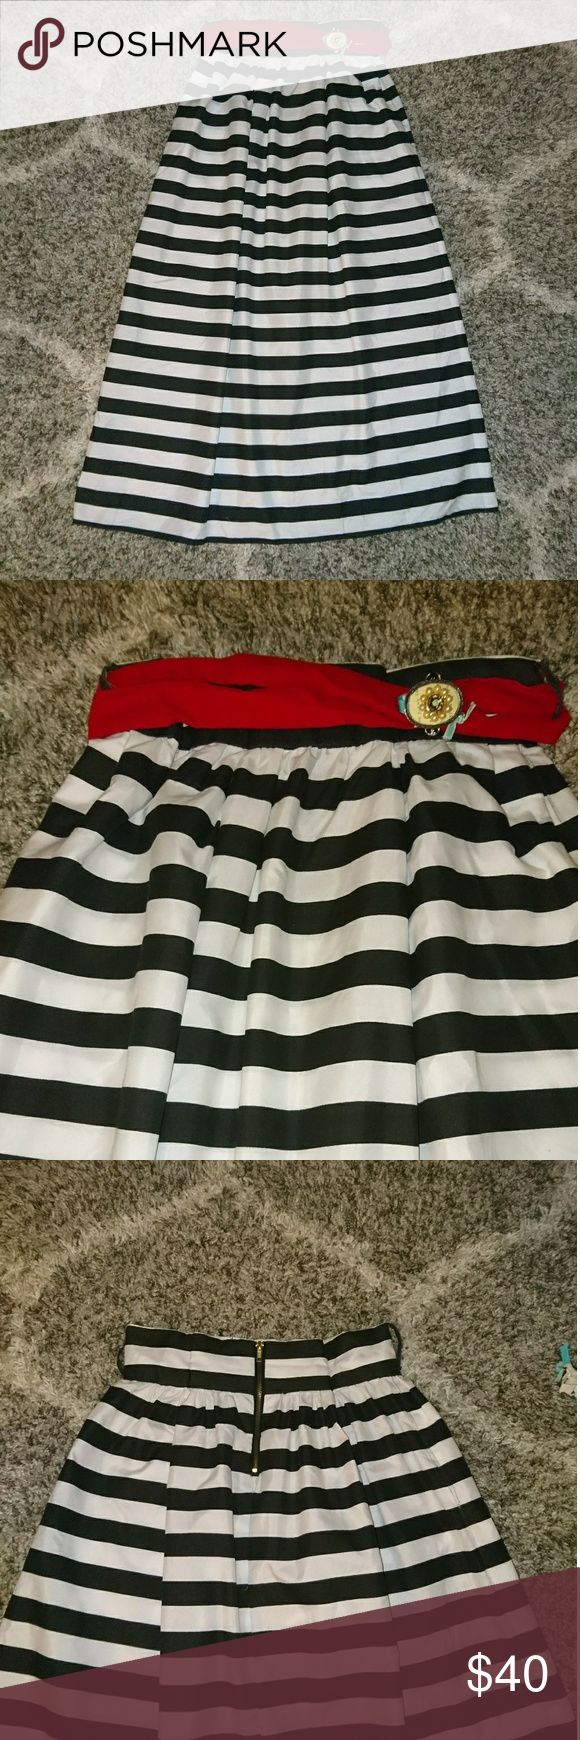 Semi formal black and white striped maxi skirt Homemade. Made this several years ago with a lady who could sew much better than me☺️. Gathered. Has pockets😁! I wore this similar to the pics with a black top for Christmas parties and a nice green tank blouse with sandals for the summer 😊. The material has a slight sheen to it. I cannot remember the fabric content but I have steam cleaned and ironed it with no problems. I will include the wired, velvet like material red sash. It is long…